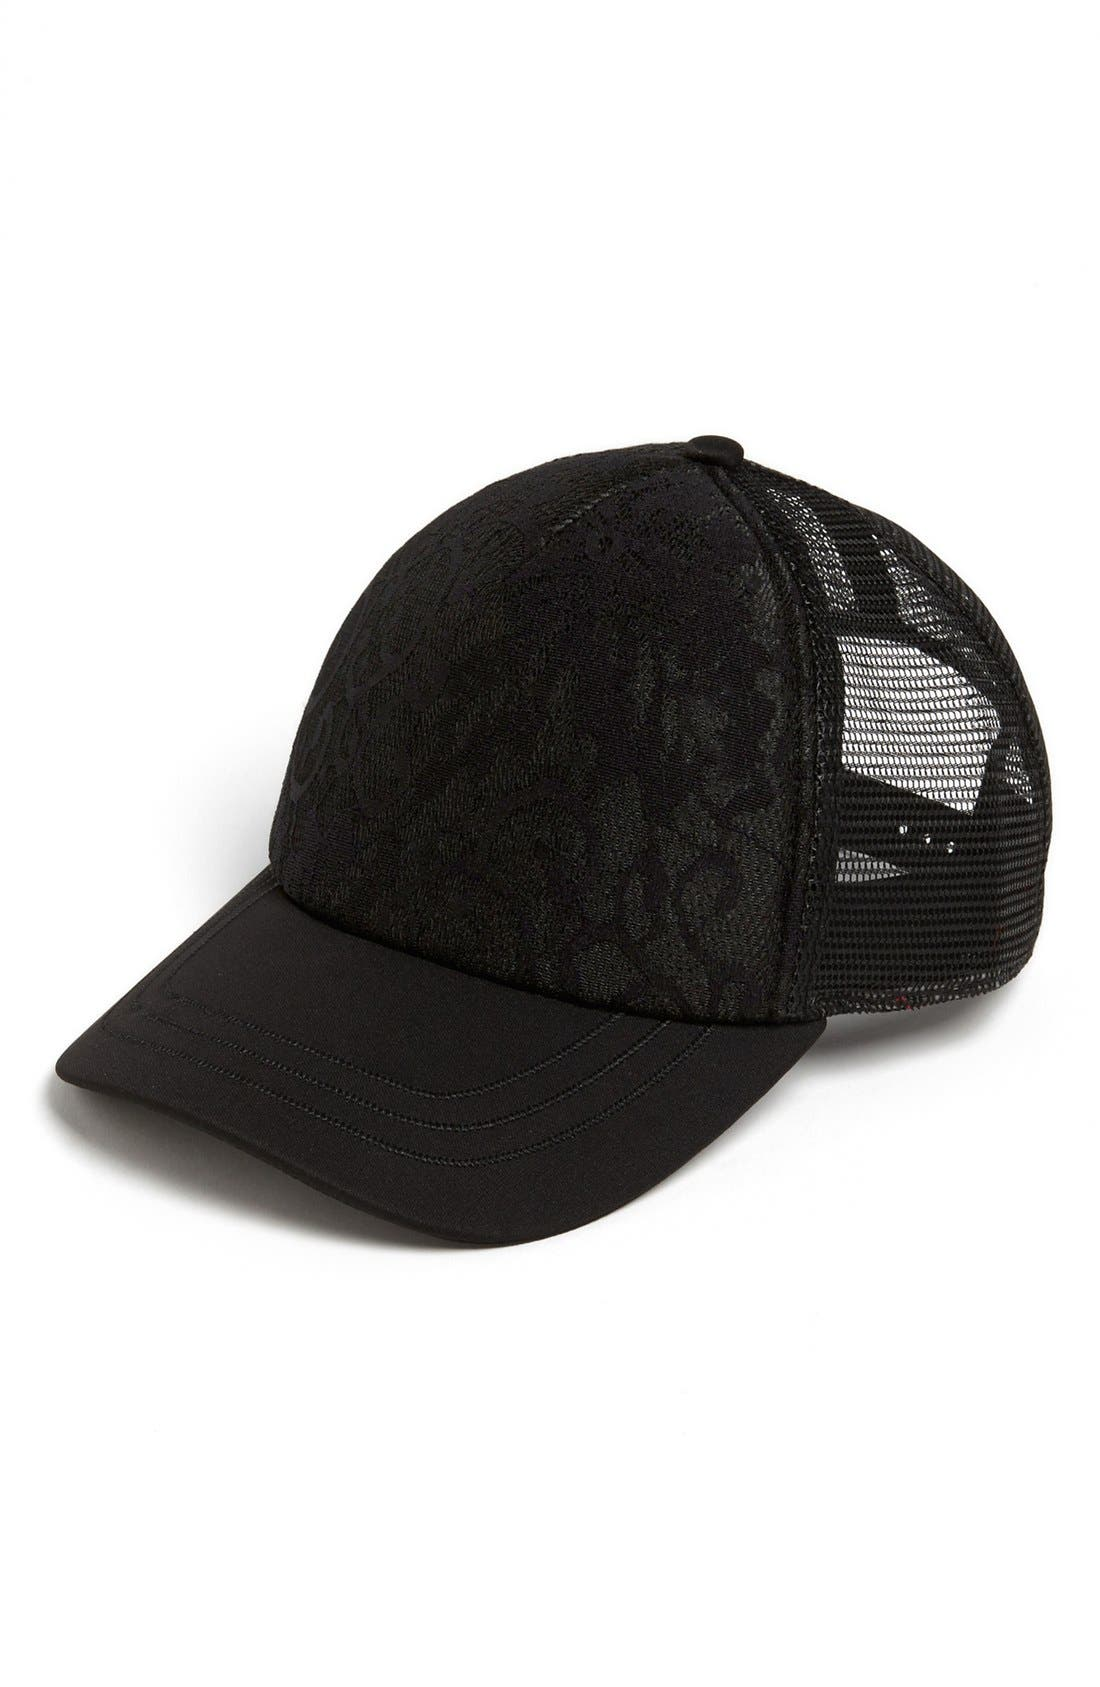 Alternate Image 1 Selected - San Diego Hat Lace Baseball Cap